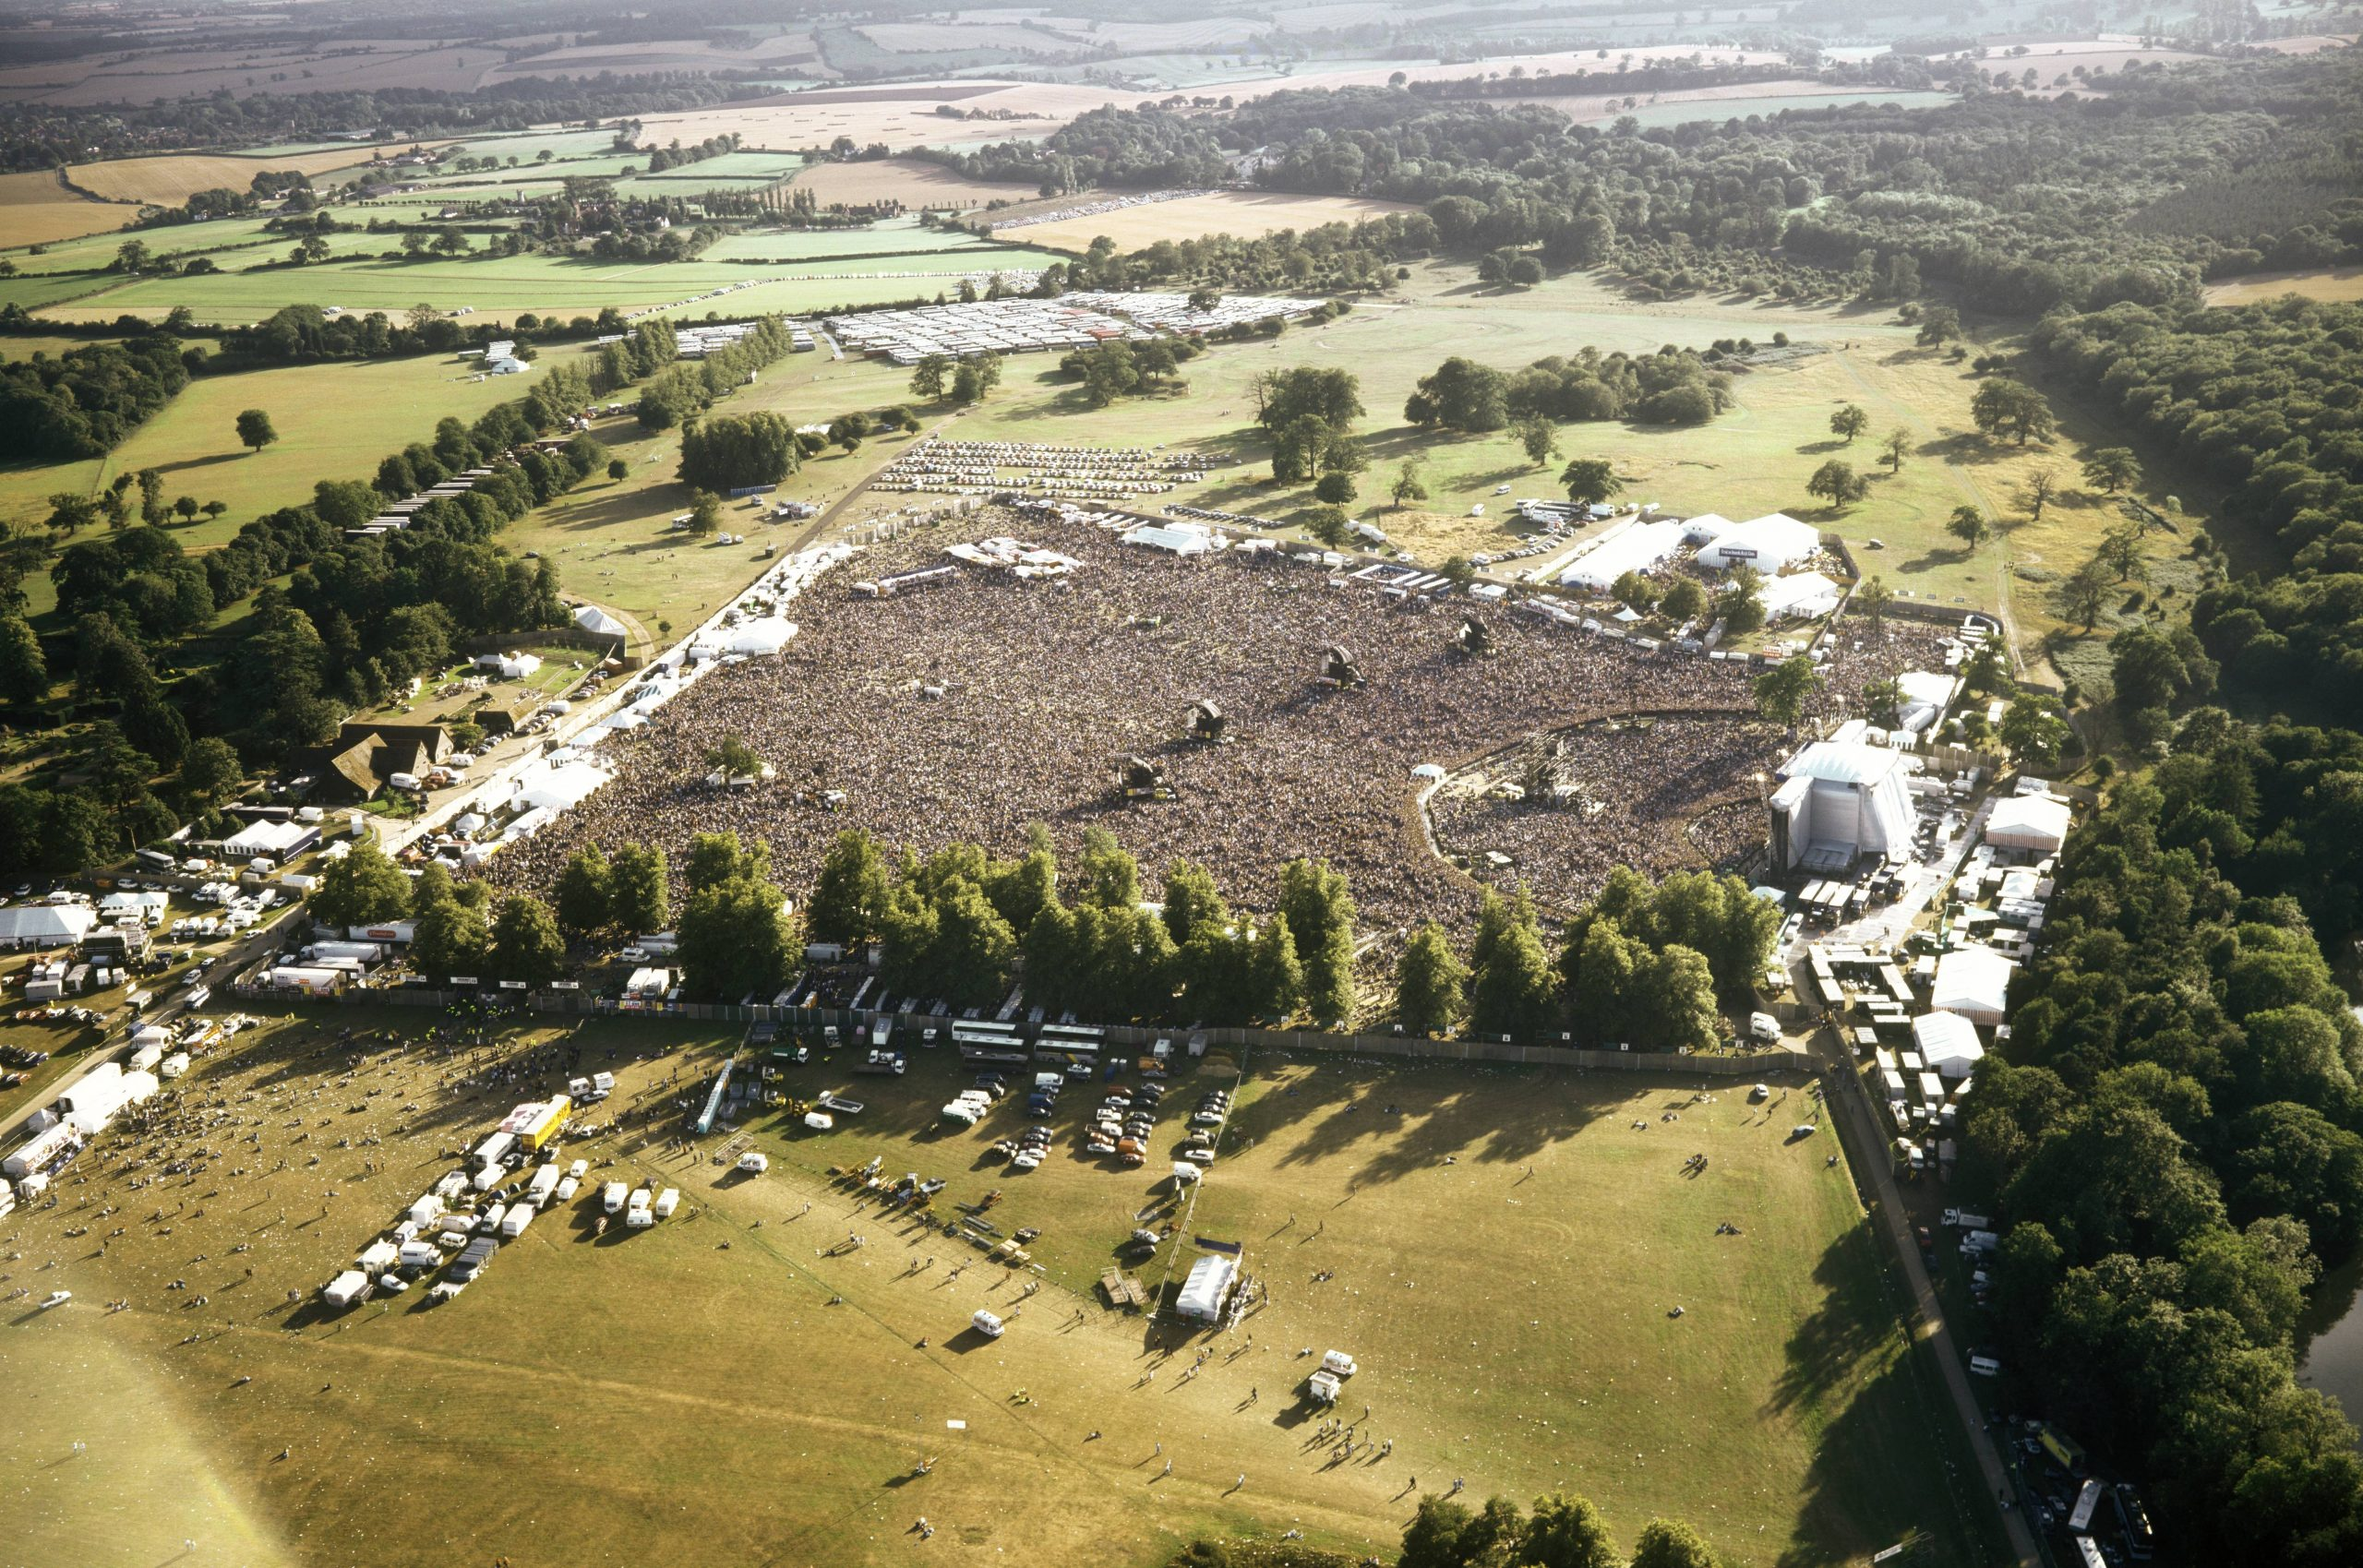 Noelle and Liam Gallagher working on a documentary on Knebworth's oasis shows